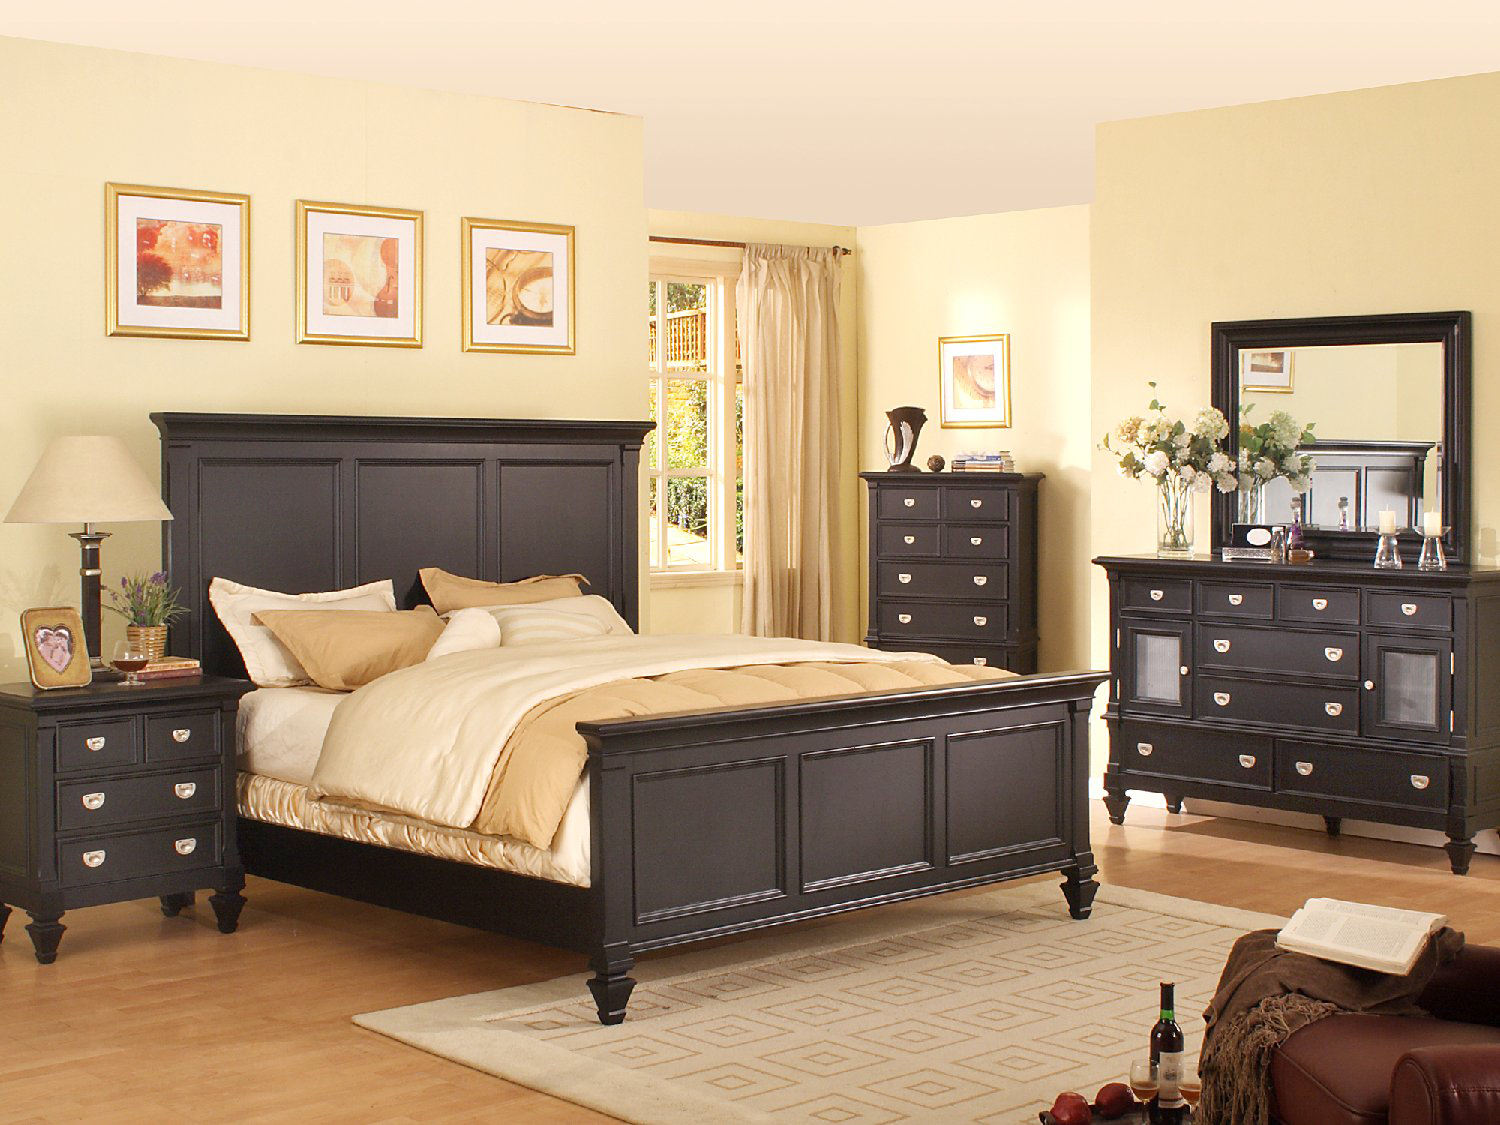 Summer Breeze Black Panel Bedroom Suite by Thomas Cole Designs | HOM ...